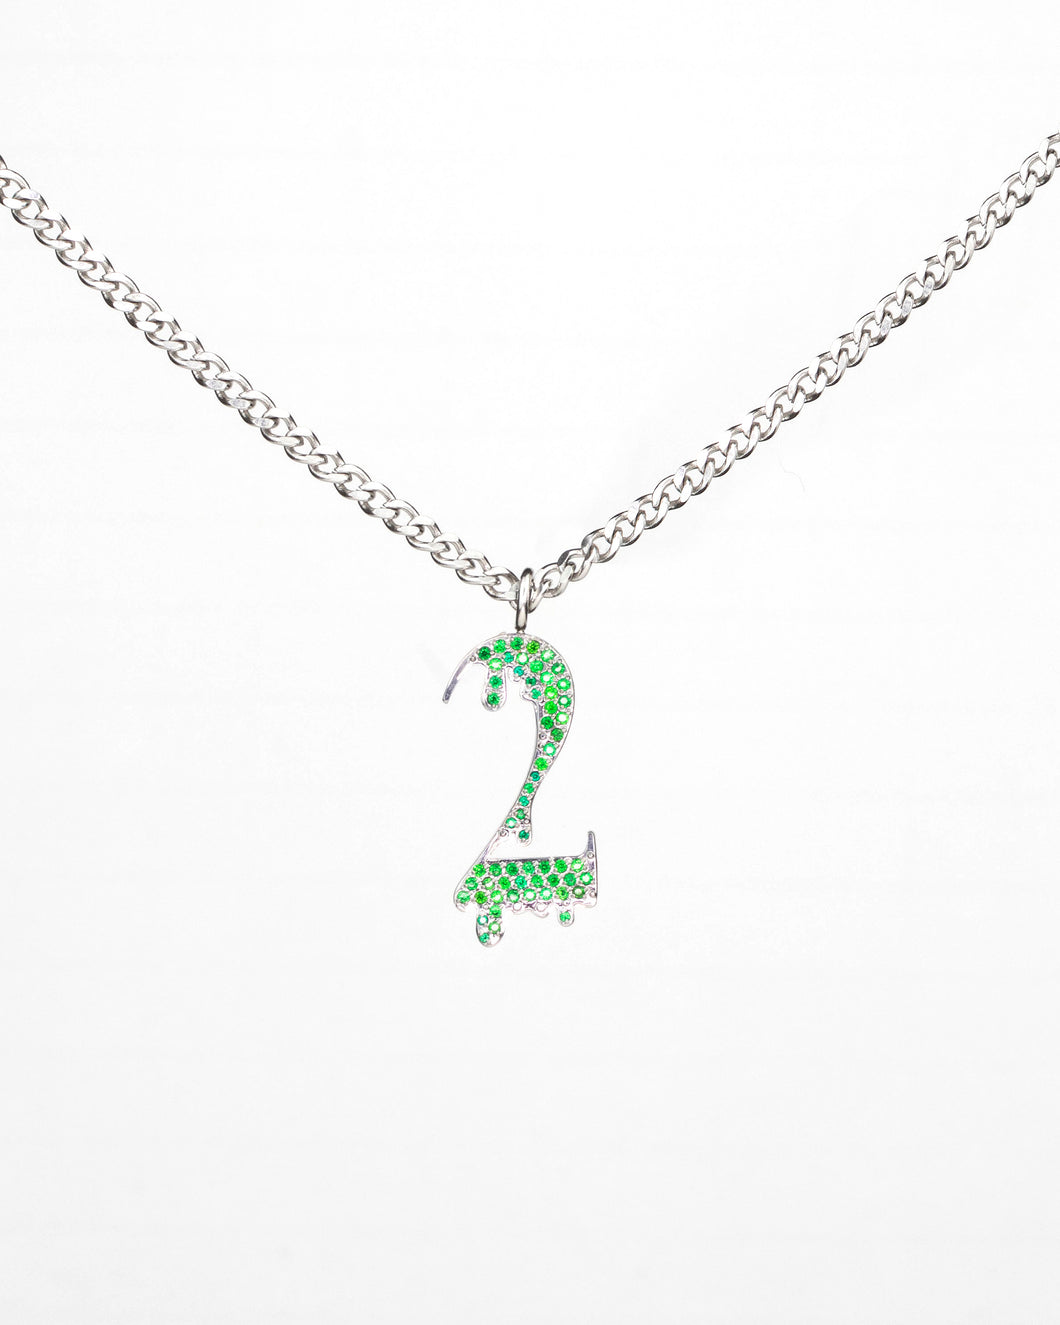 The Slime Number Pendant